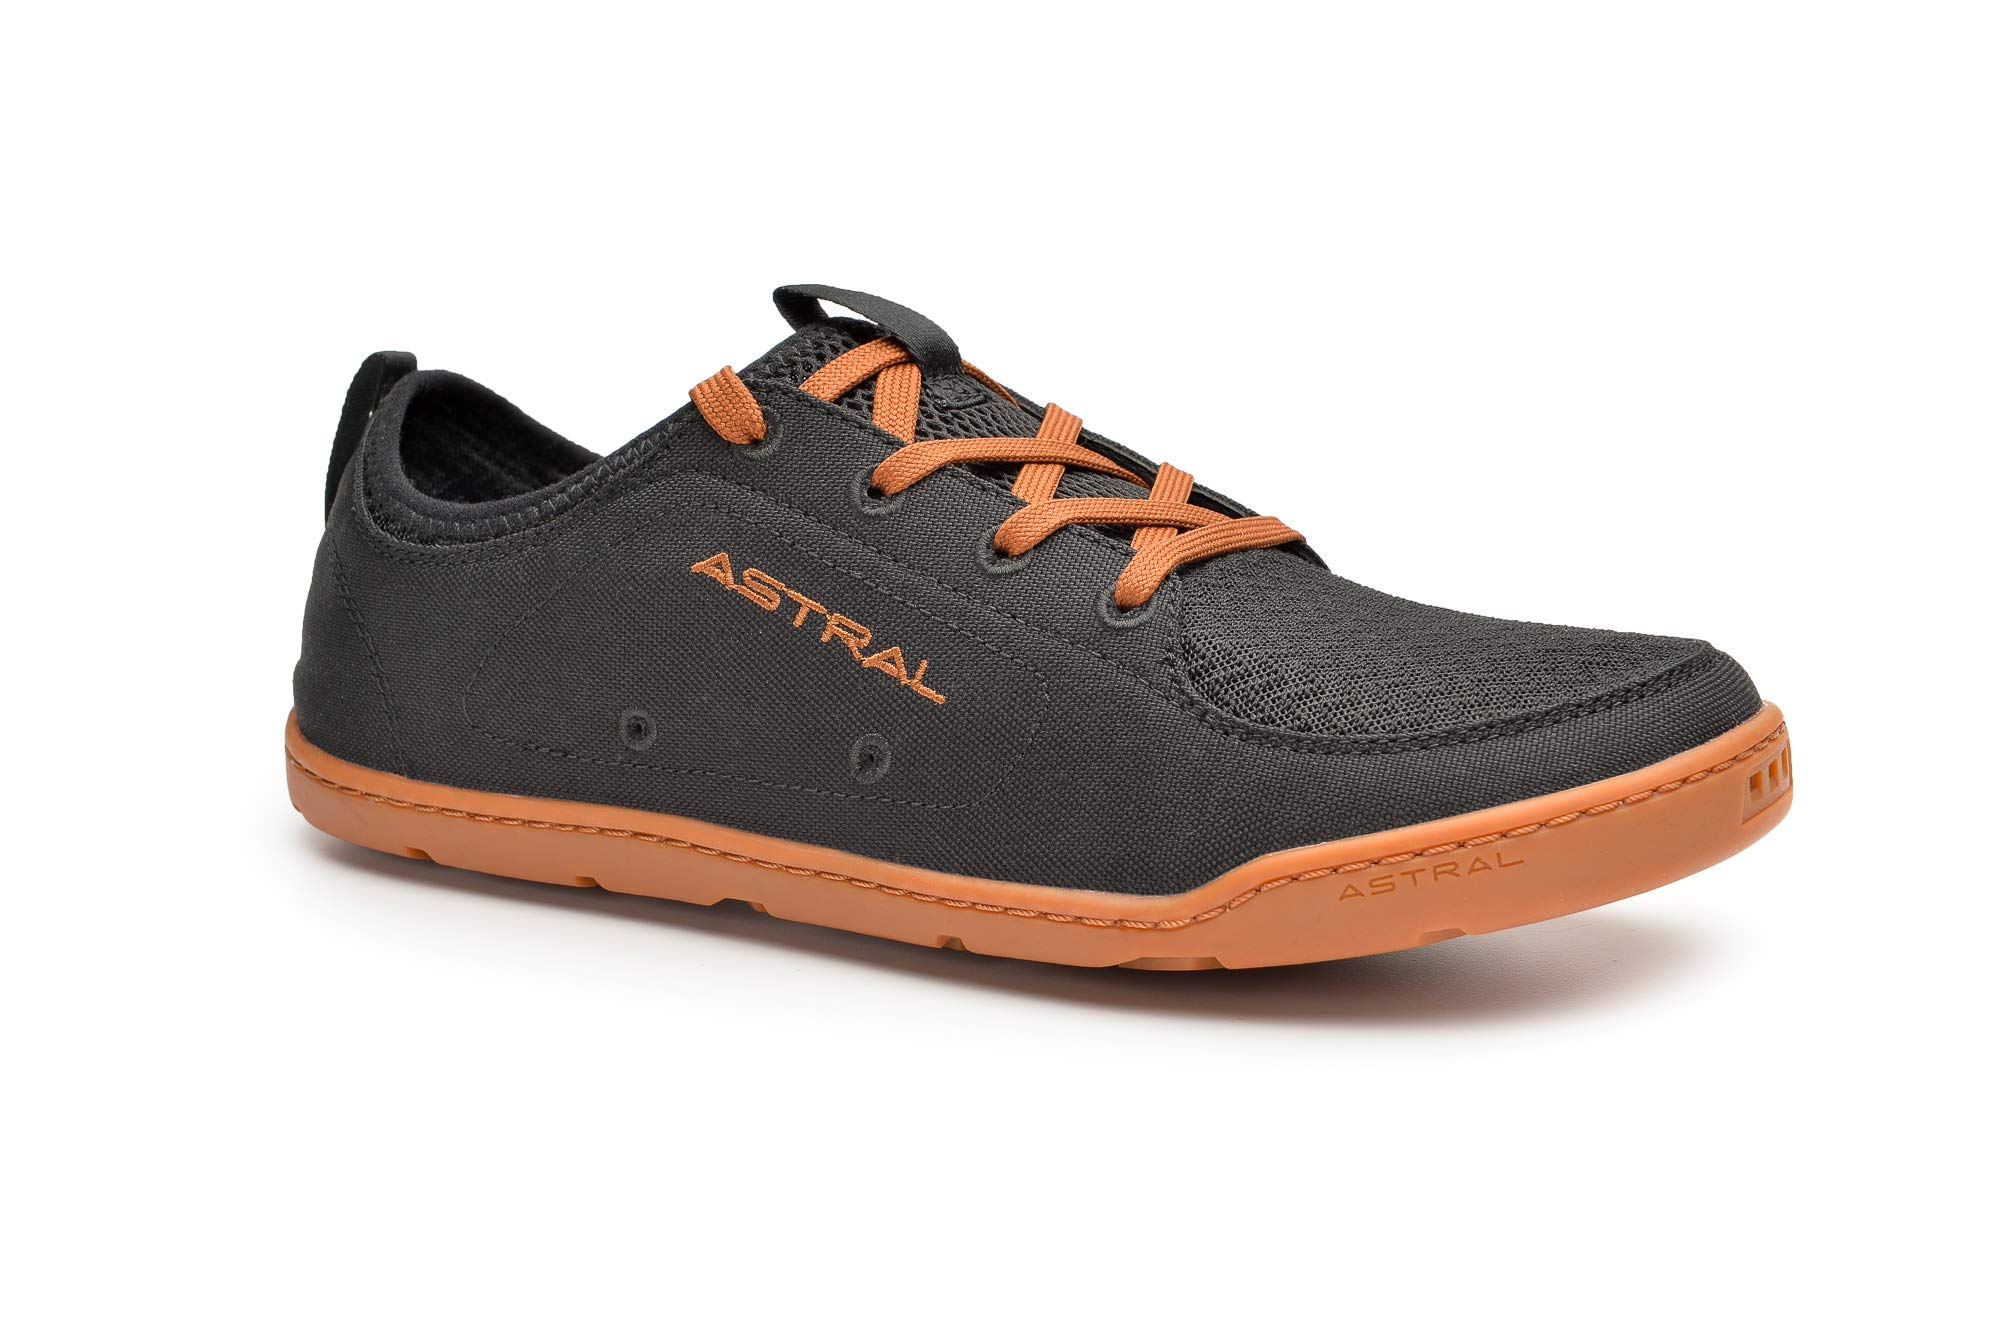 Astral Men's Loyak Everyday Outdoor Minimalist Sneakers, Lightweight and Flexible, Made for Water, Casual, Travel, and Boat, Black/Brown, 9 M US by Astral